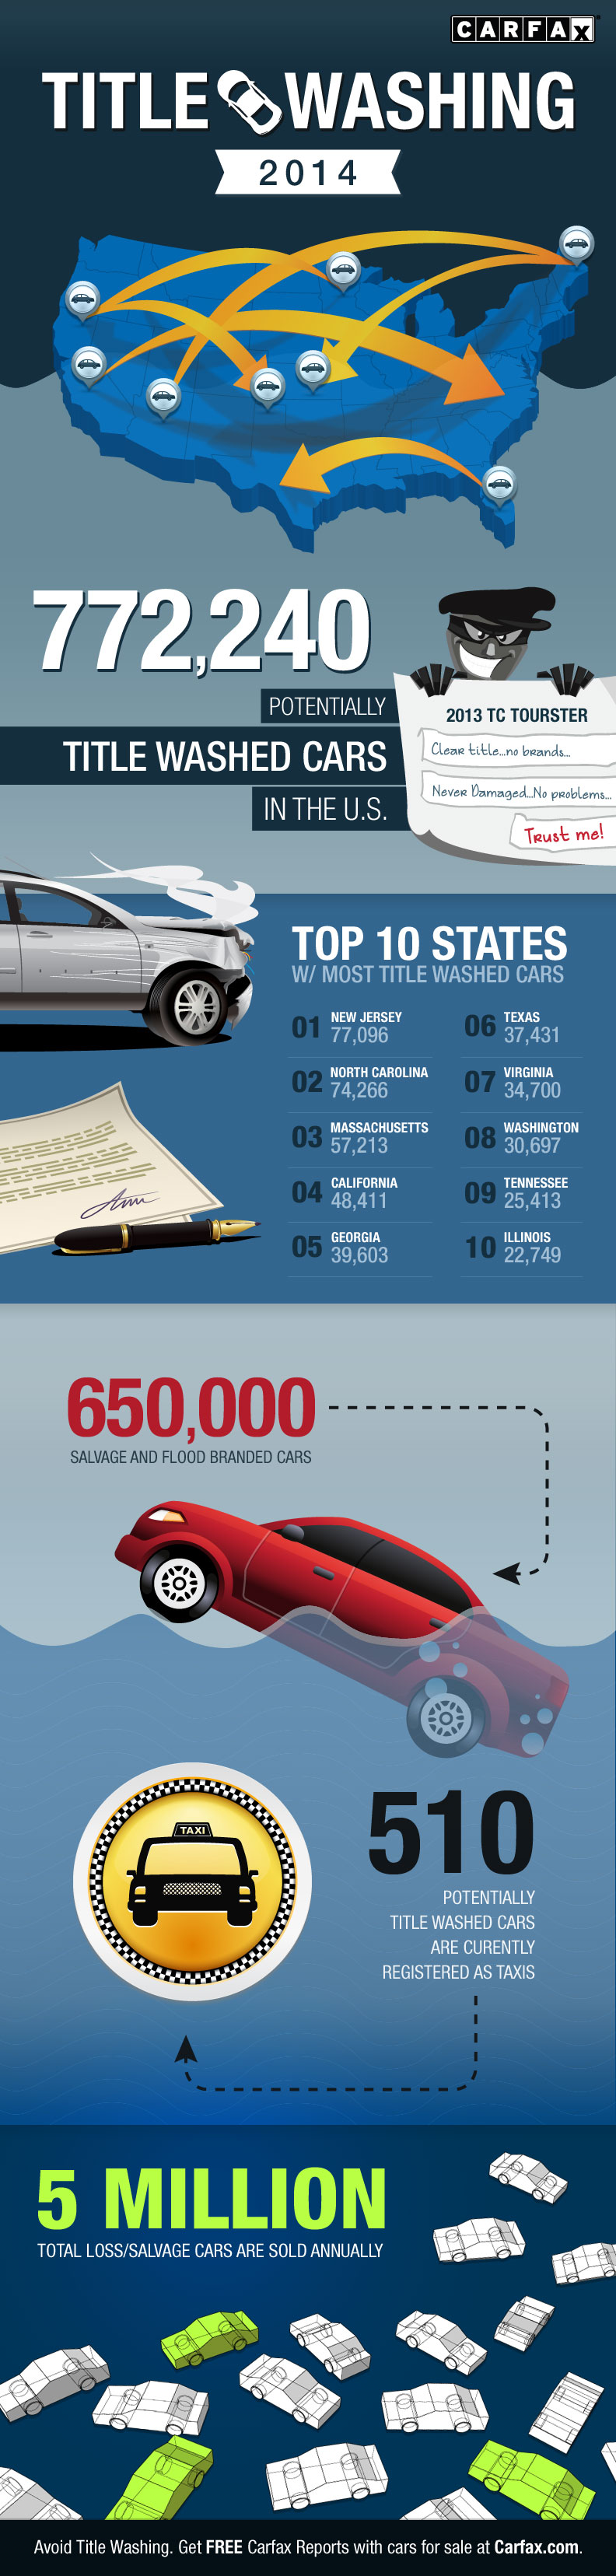 title-washing-2014-infographic-carfax-long